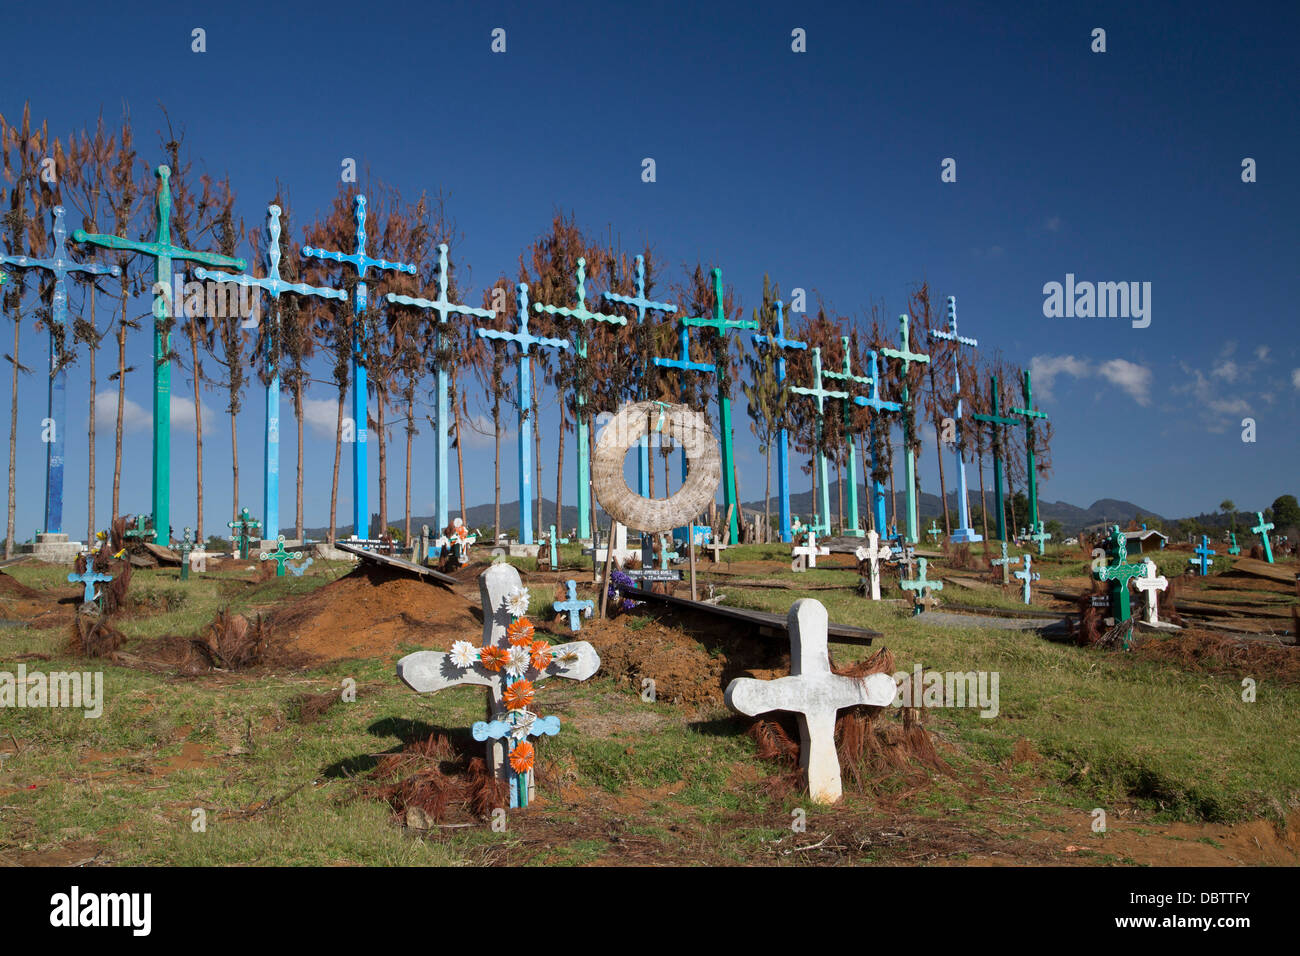 Graveyard, boards represent doors to and from the grave, village of El Romerillo, Chiapas, Mexico - Stock Image